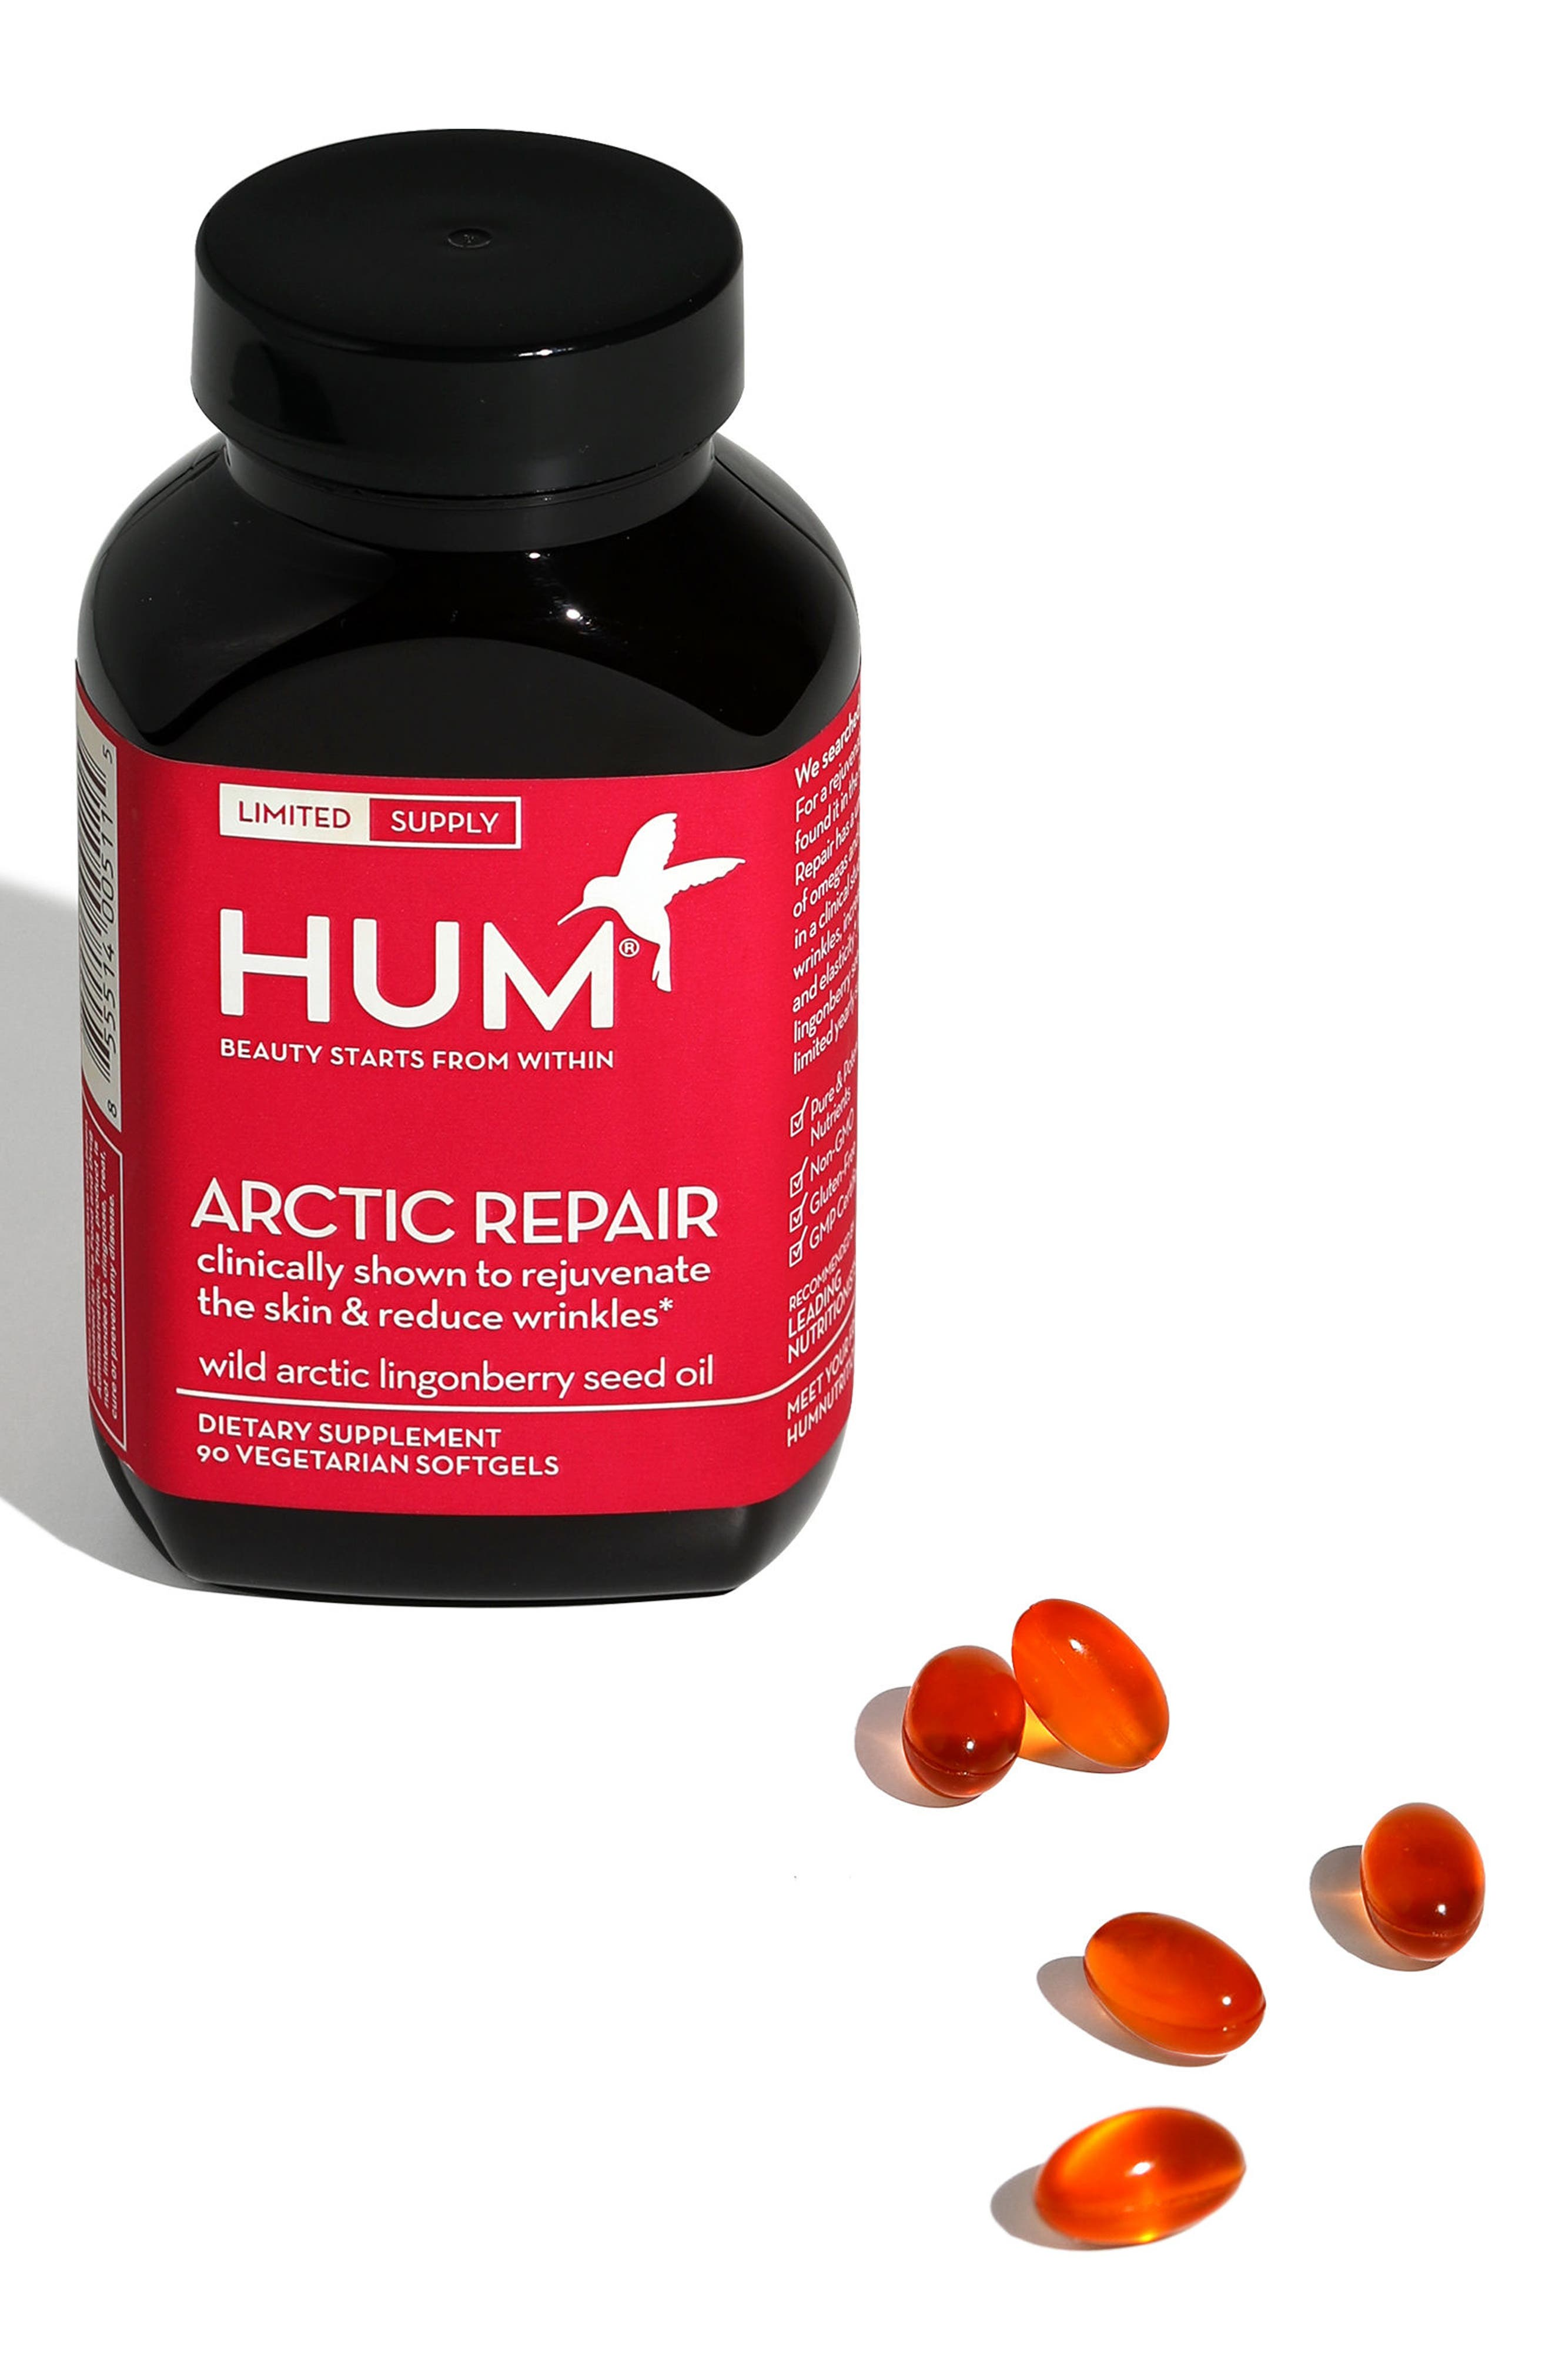 Arctic Repair Supplement for Fine Lines and Wrinkles,                             Alternate thumbnail 5, color,                             No Color